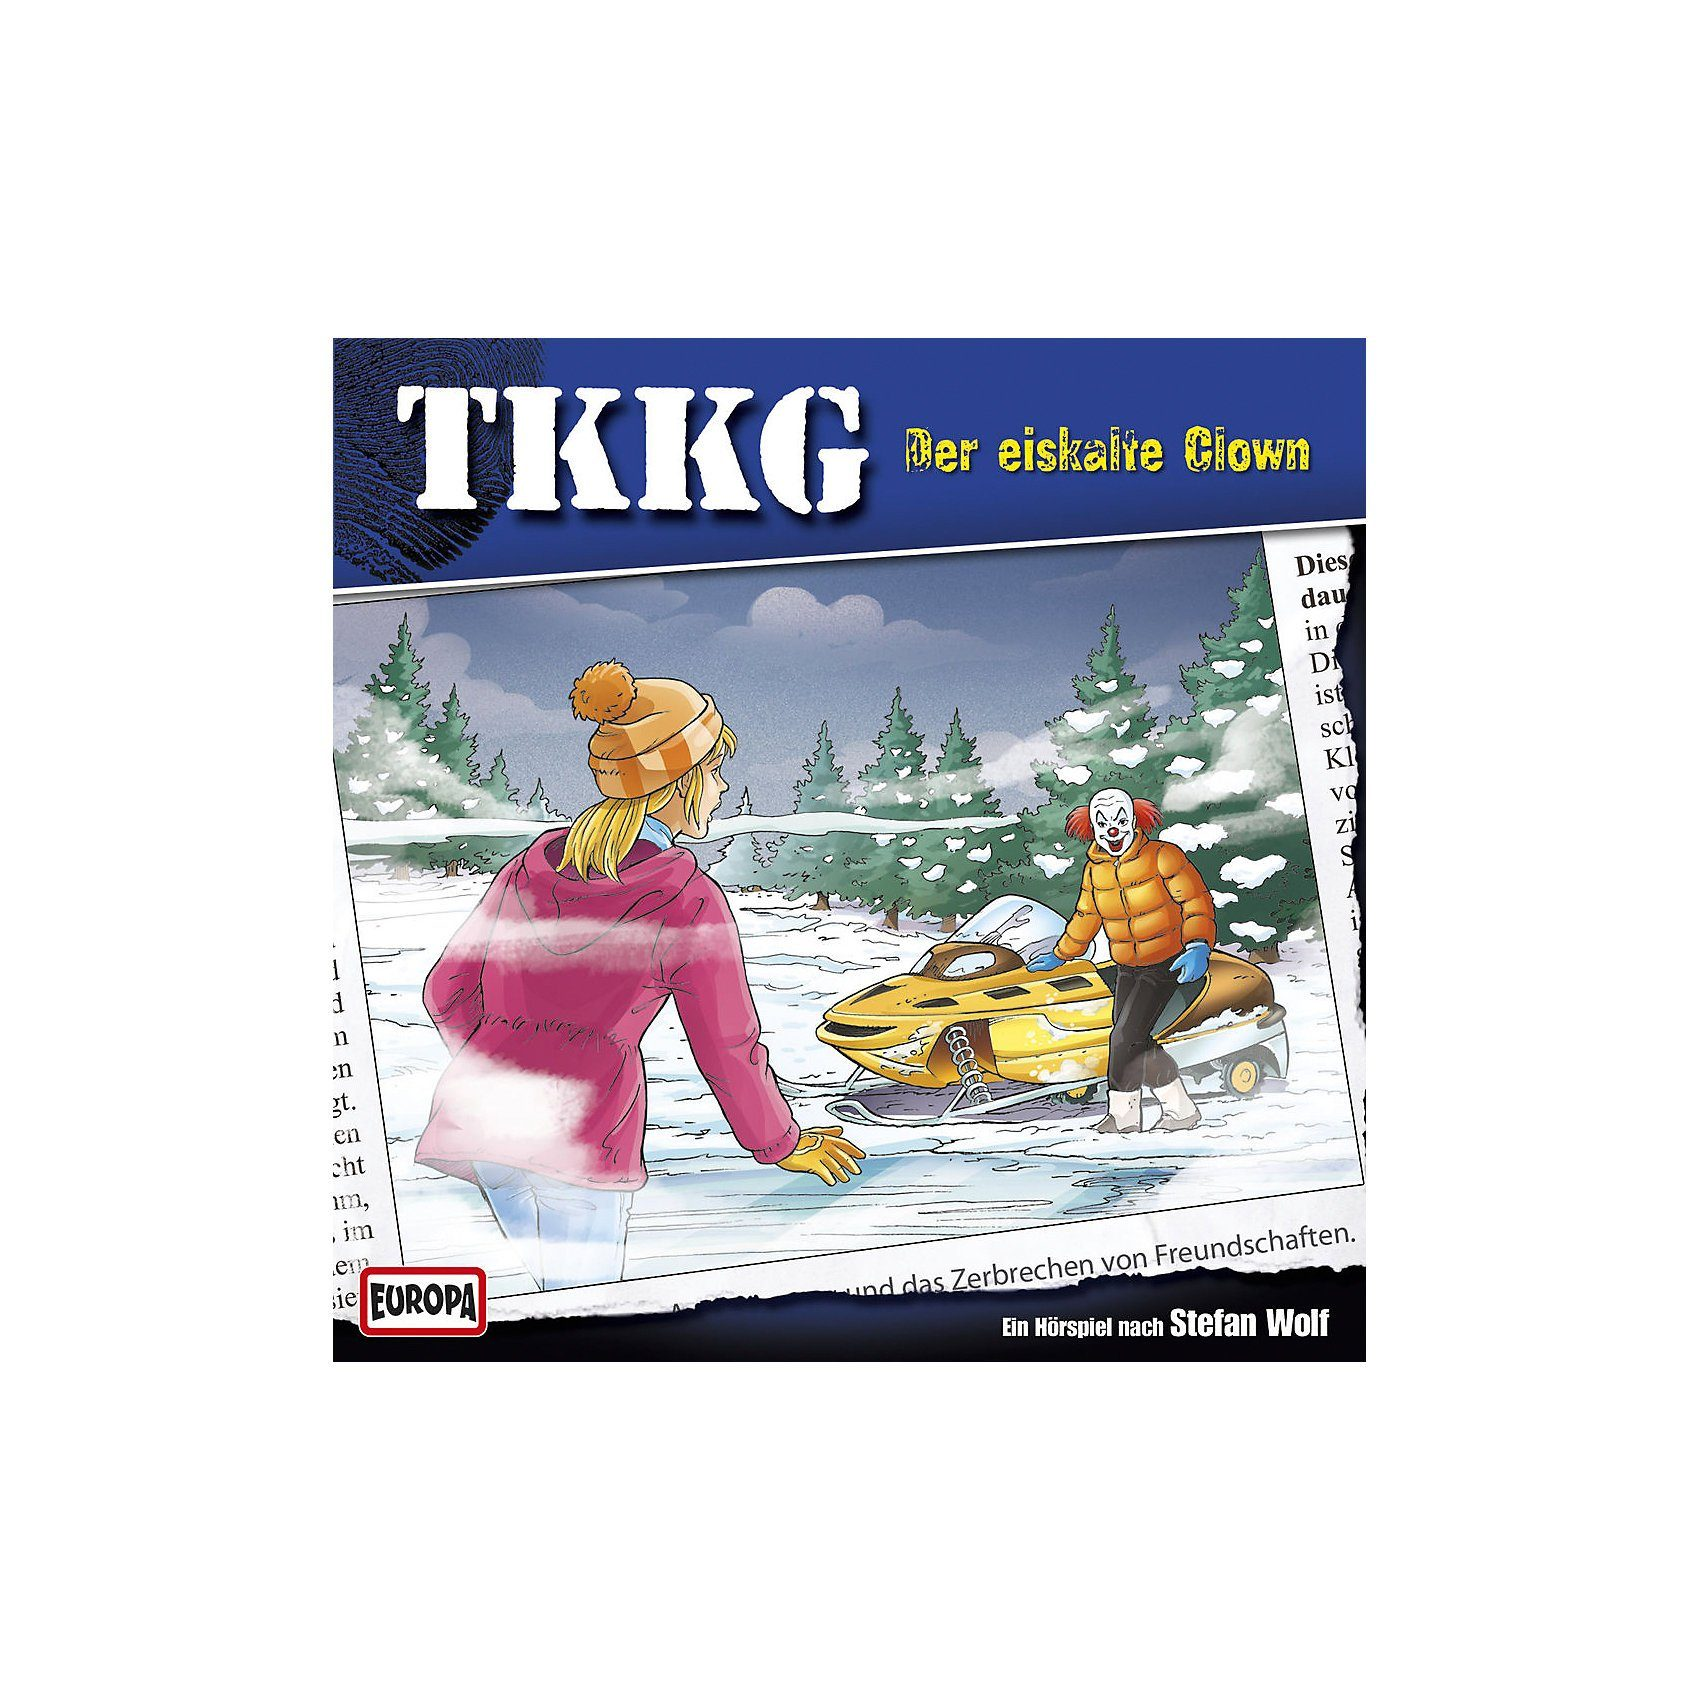 Sony CD Tkkg 190 - Der eiskalte Clown